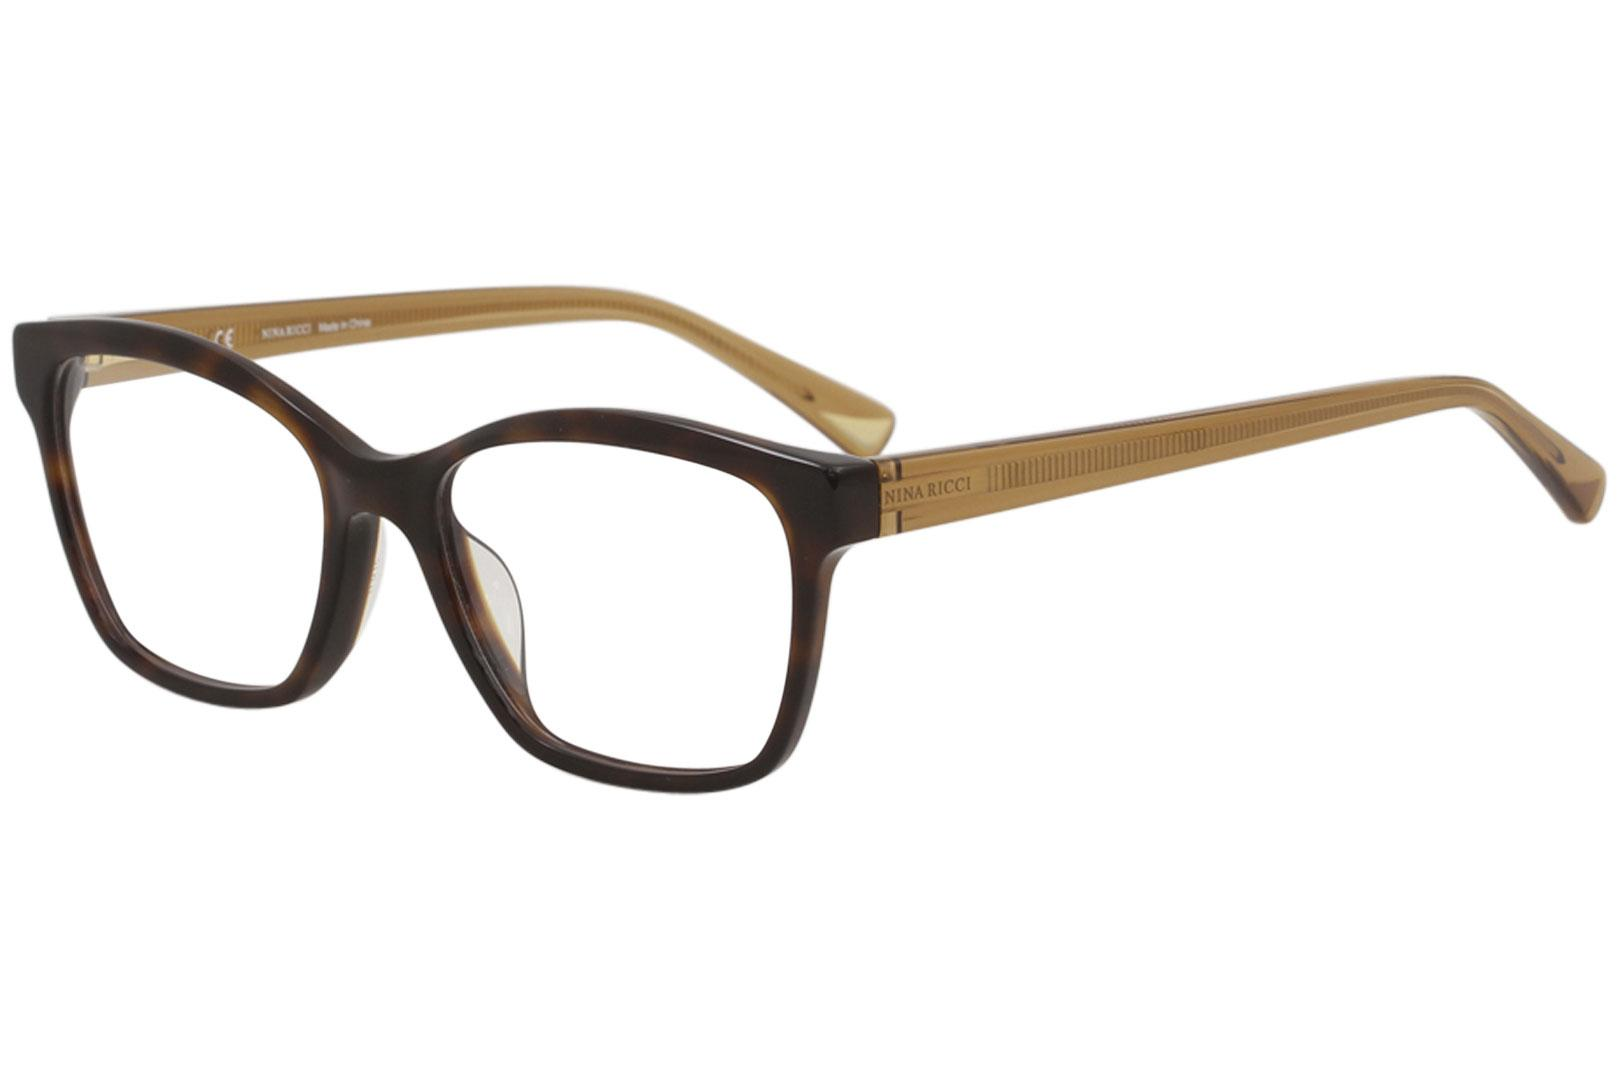 Image of Nina Ricci Eyeglasses VNR071 VNR/071 09XK Havana Full Rim Optical Frame 51mm - Dark Havana   09XK - Lens 51 Bridge 17 Temple 140mm